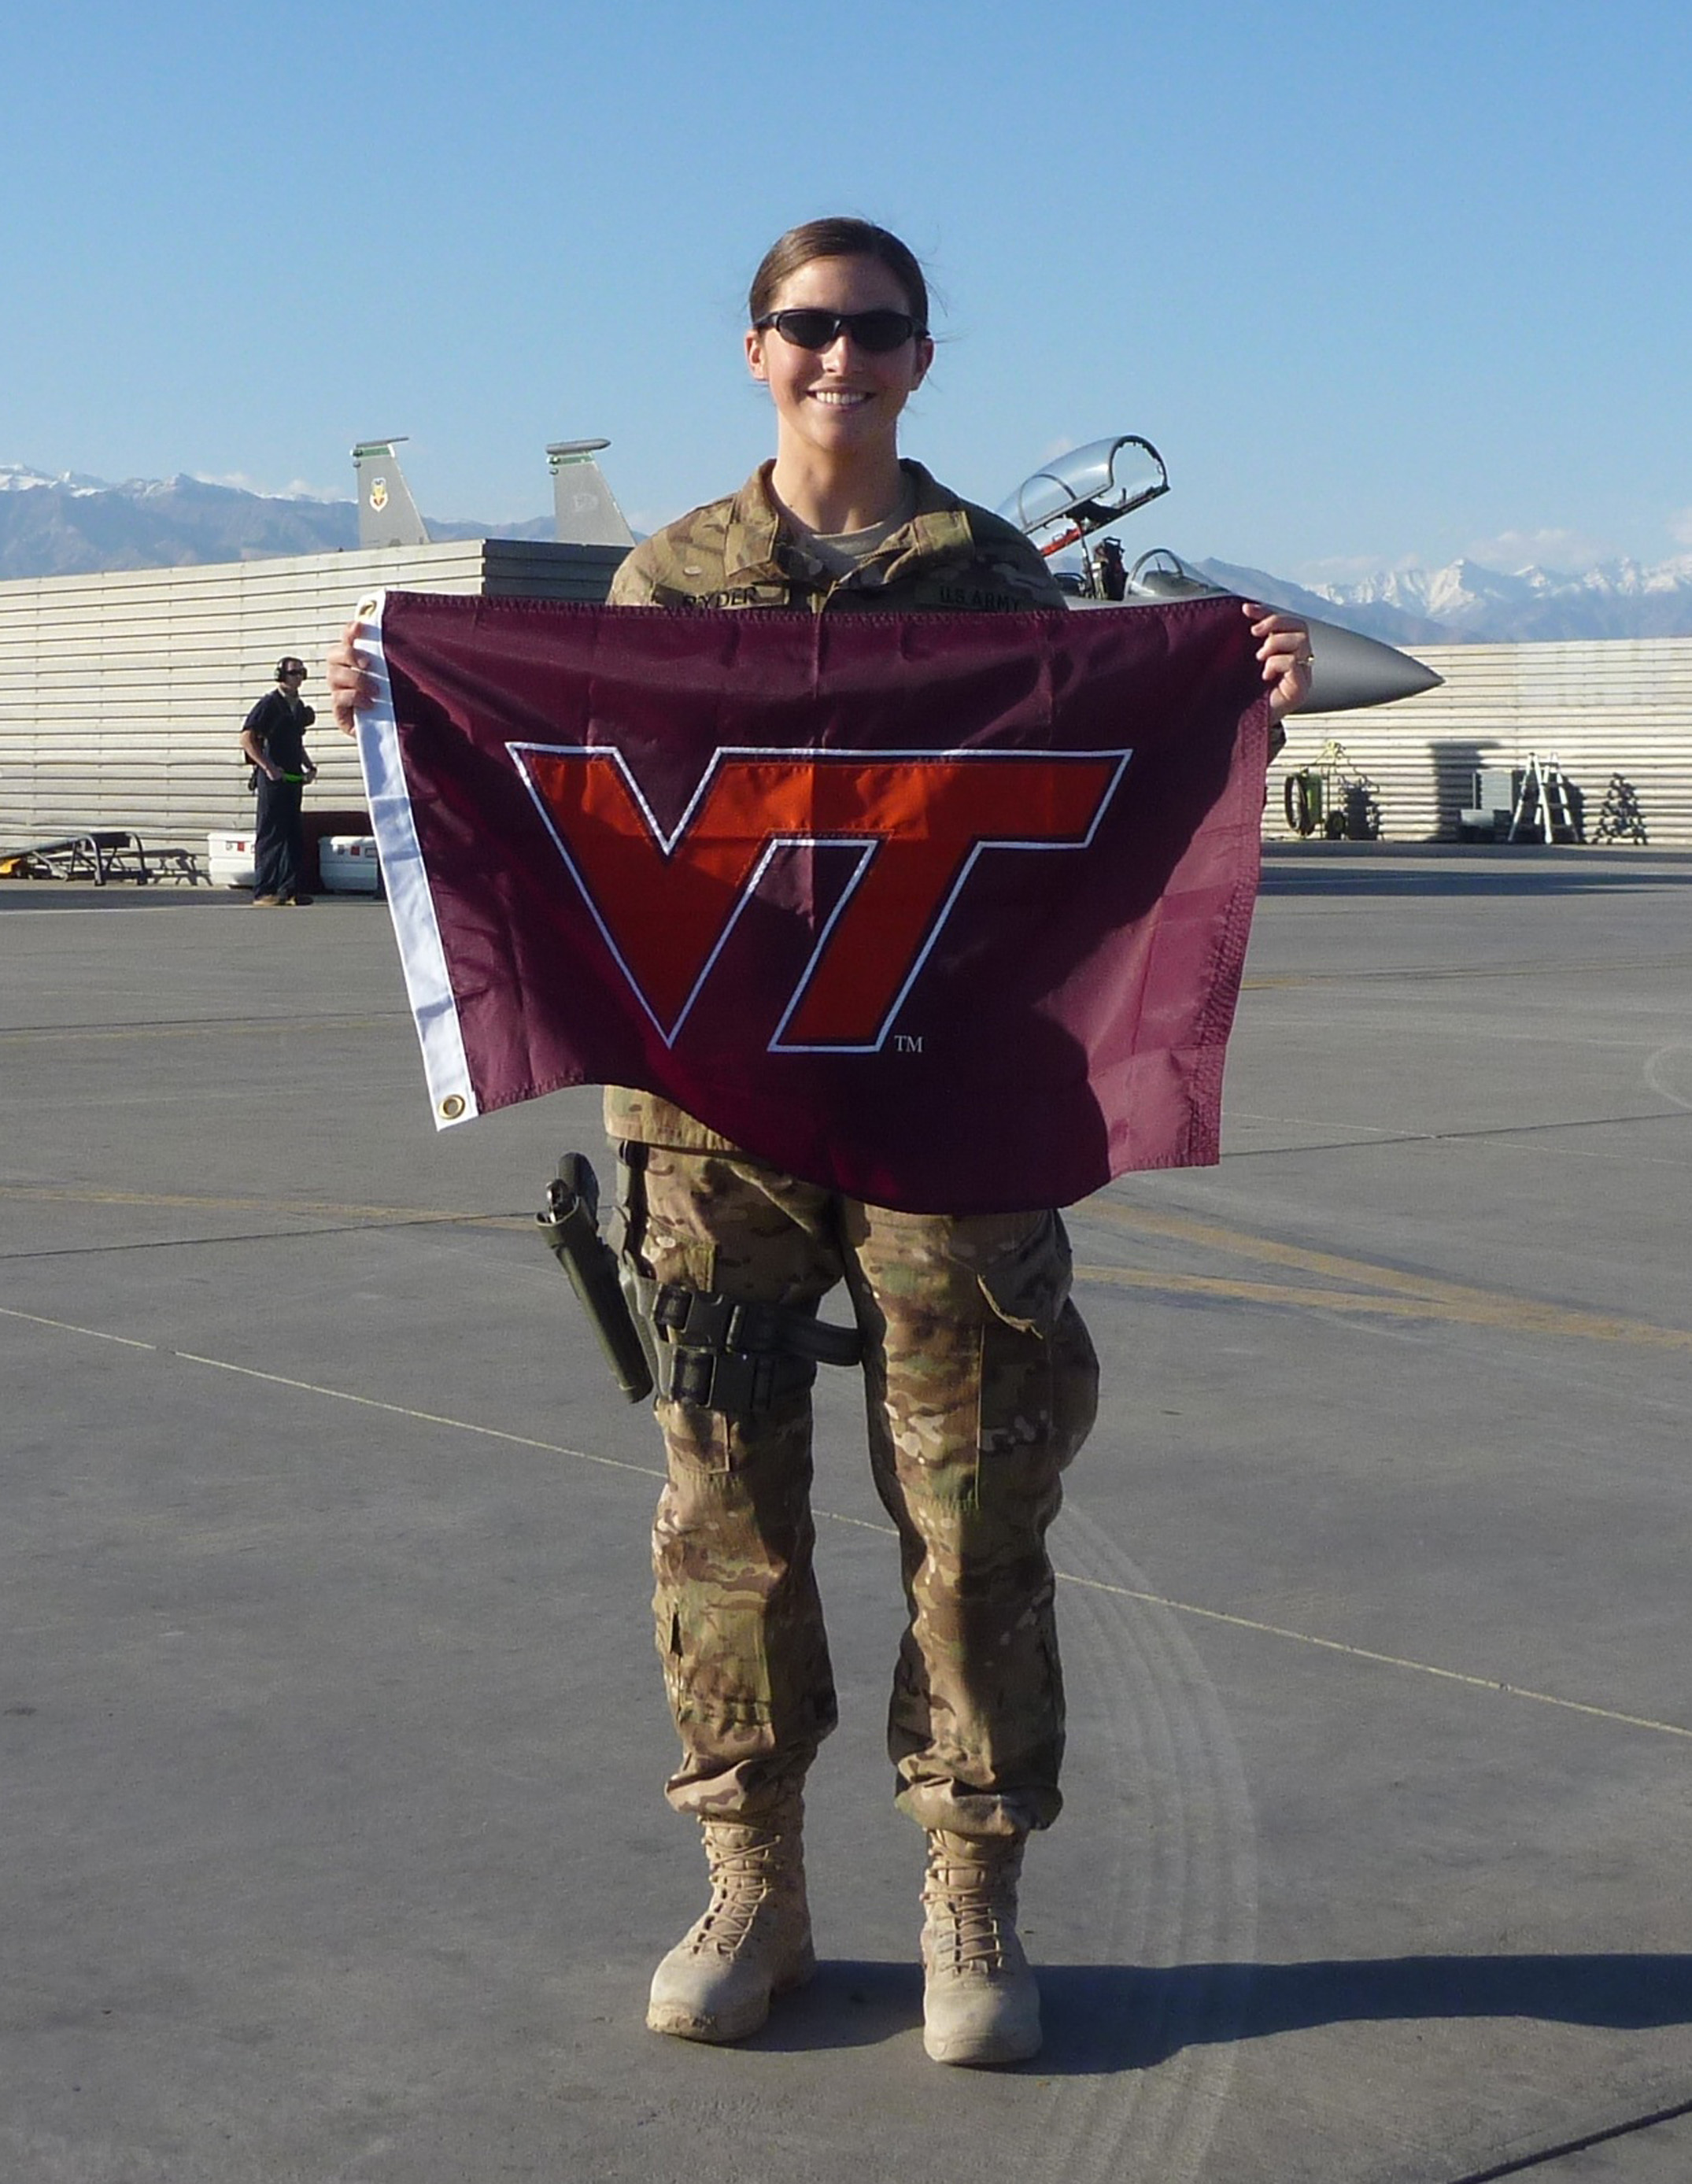 1st Lt. Patricia Urick Ryder, U.S. Army, Virginia Tech Corps of Cadets Class of 2010 shown in Afghanistan